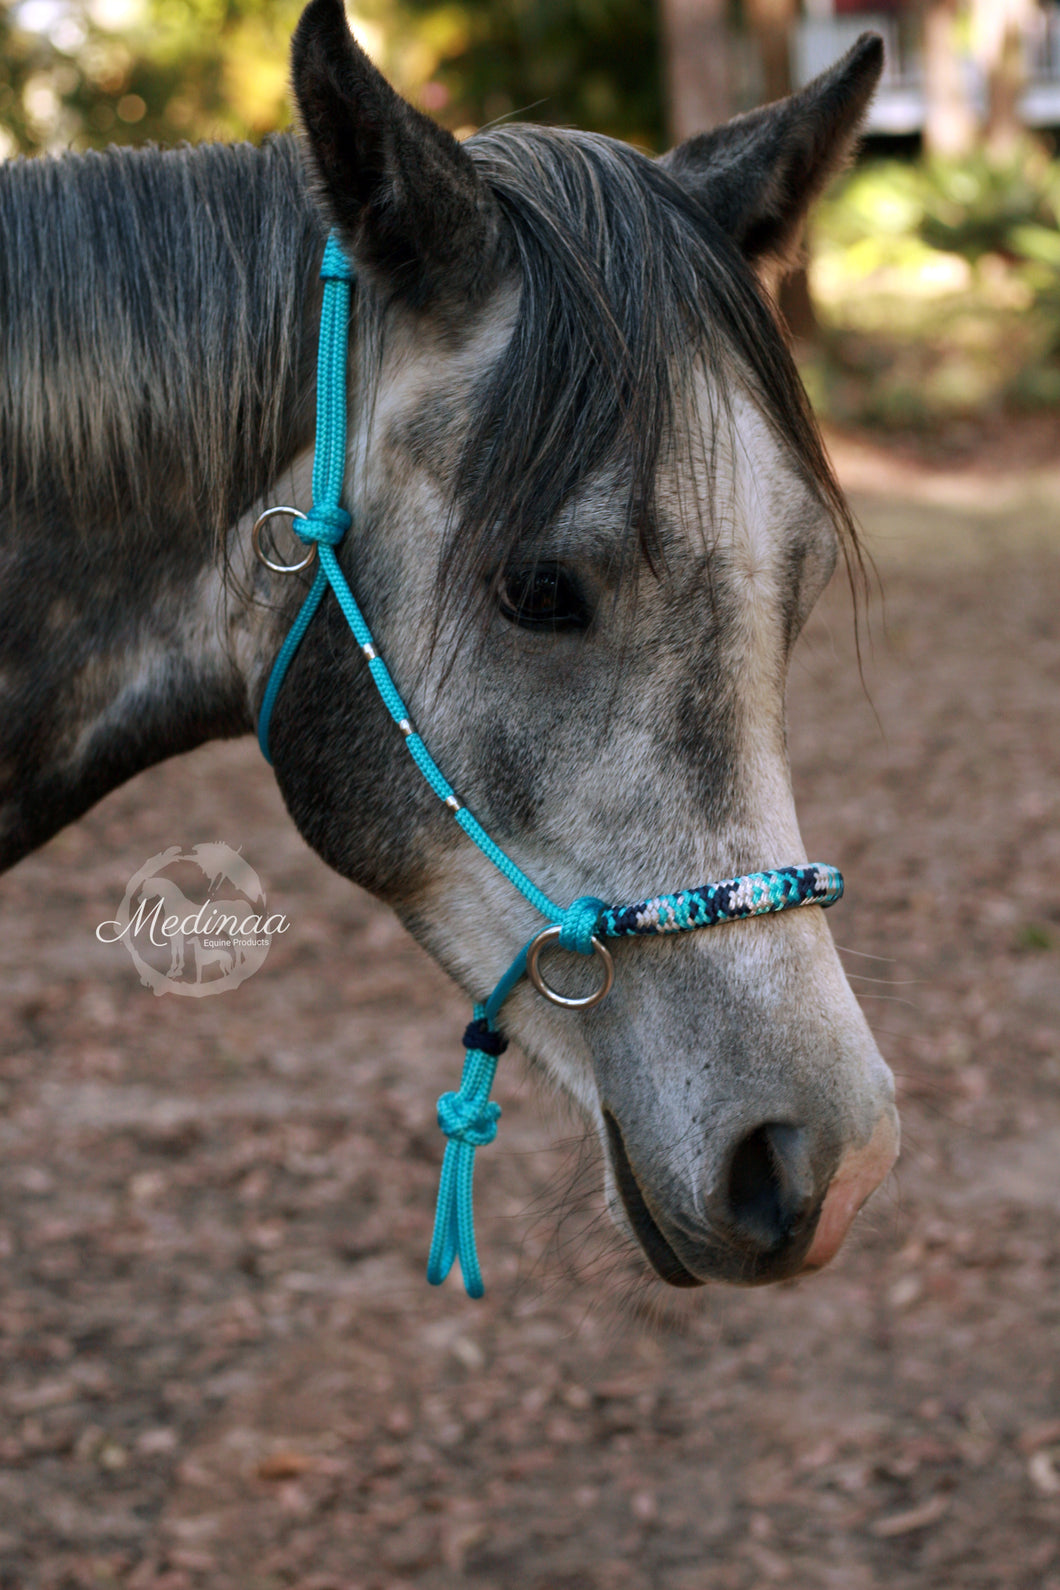 IN STOCK 3in1 Bitless Bridle - LowKey - Cob